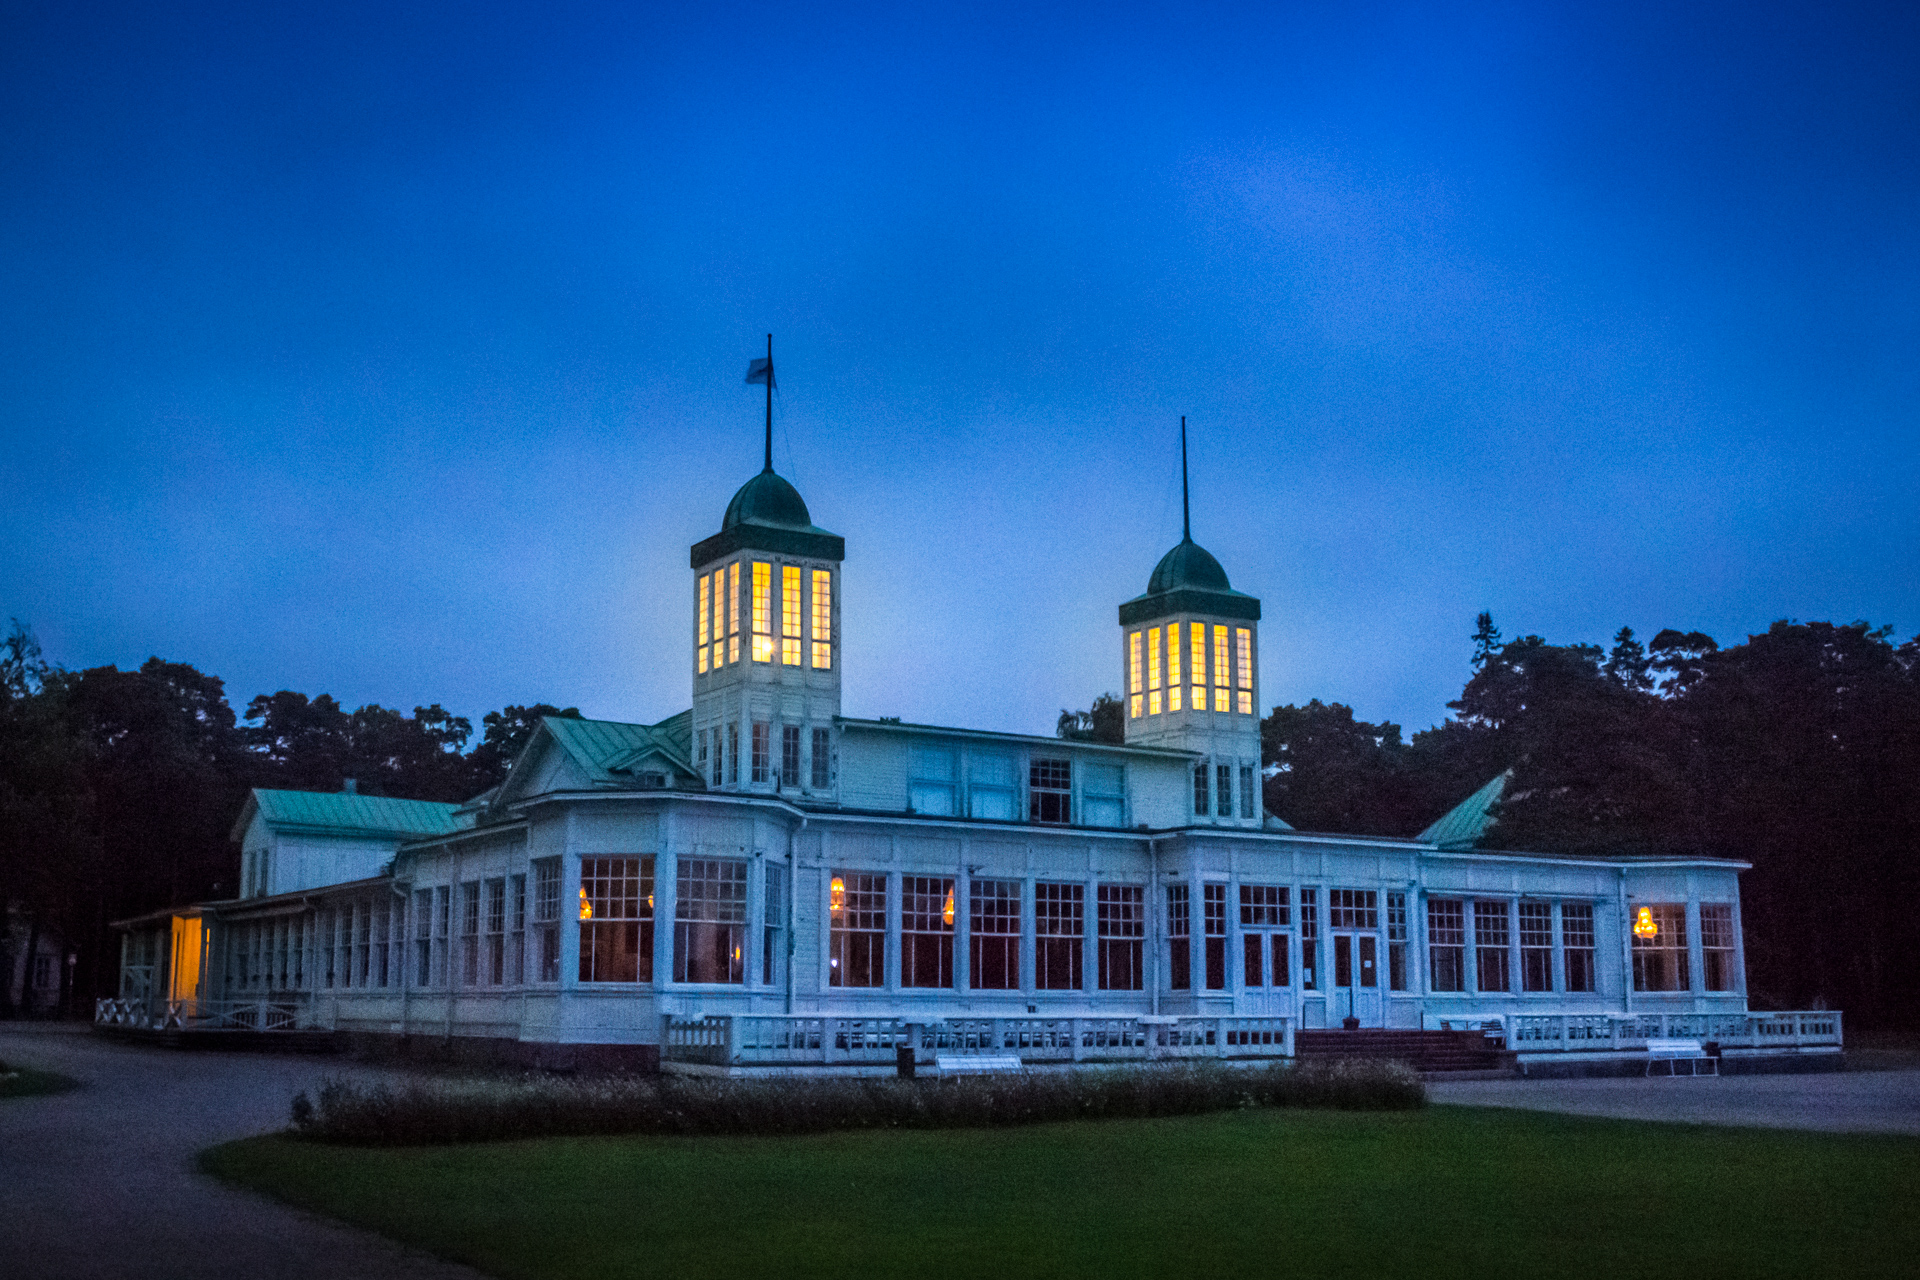 Evening lights of Hanko Casino, September 2015.